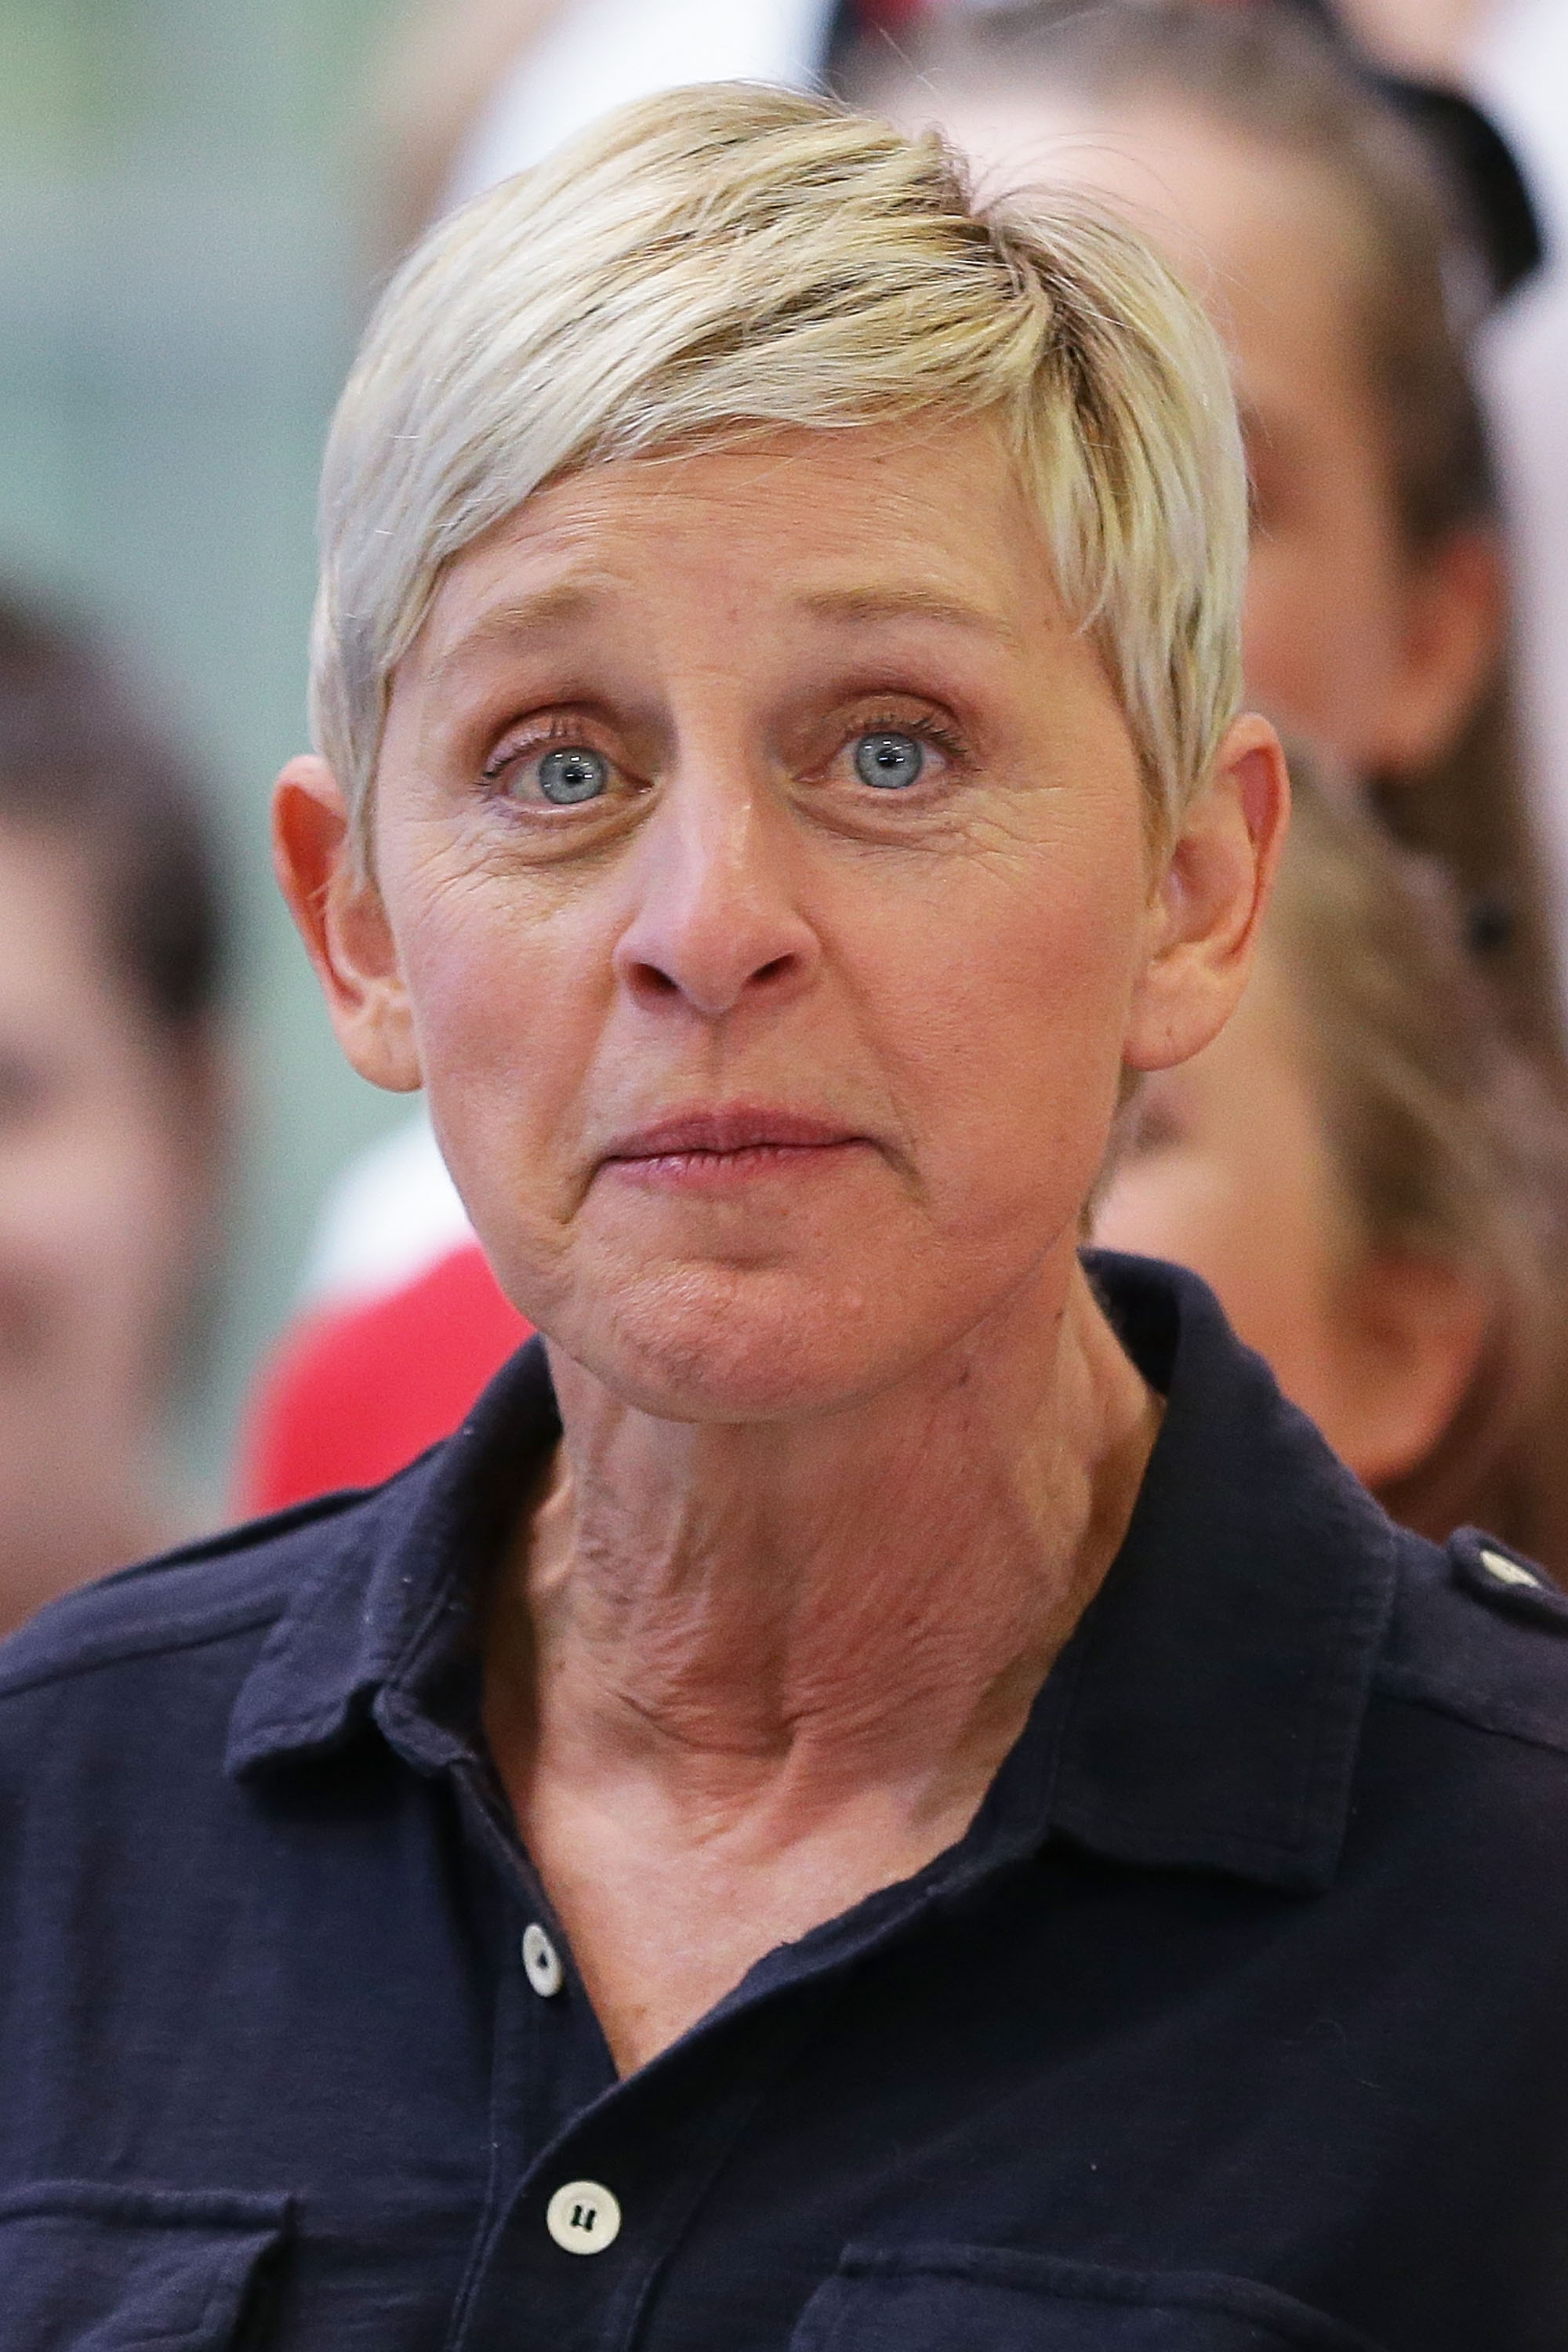 Ellen DeGeneres at the Sydney Airport in Sydney, Australia on March 22, 2013 | Photo: Getty Images